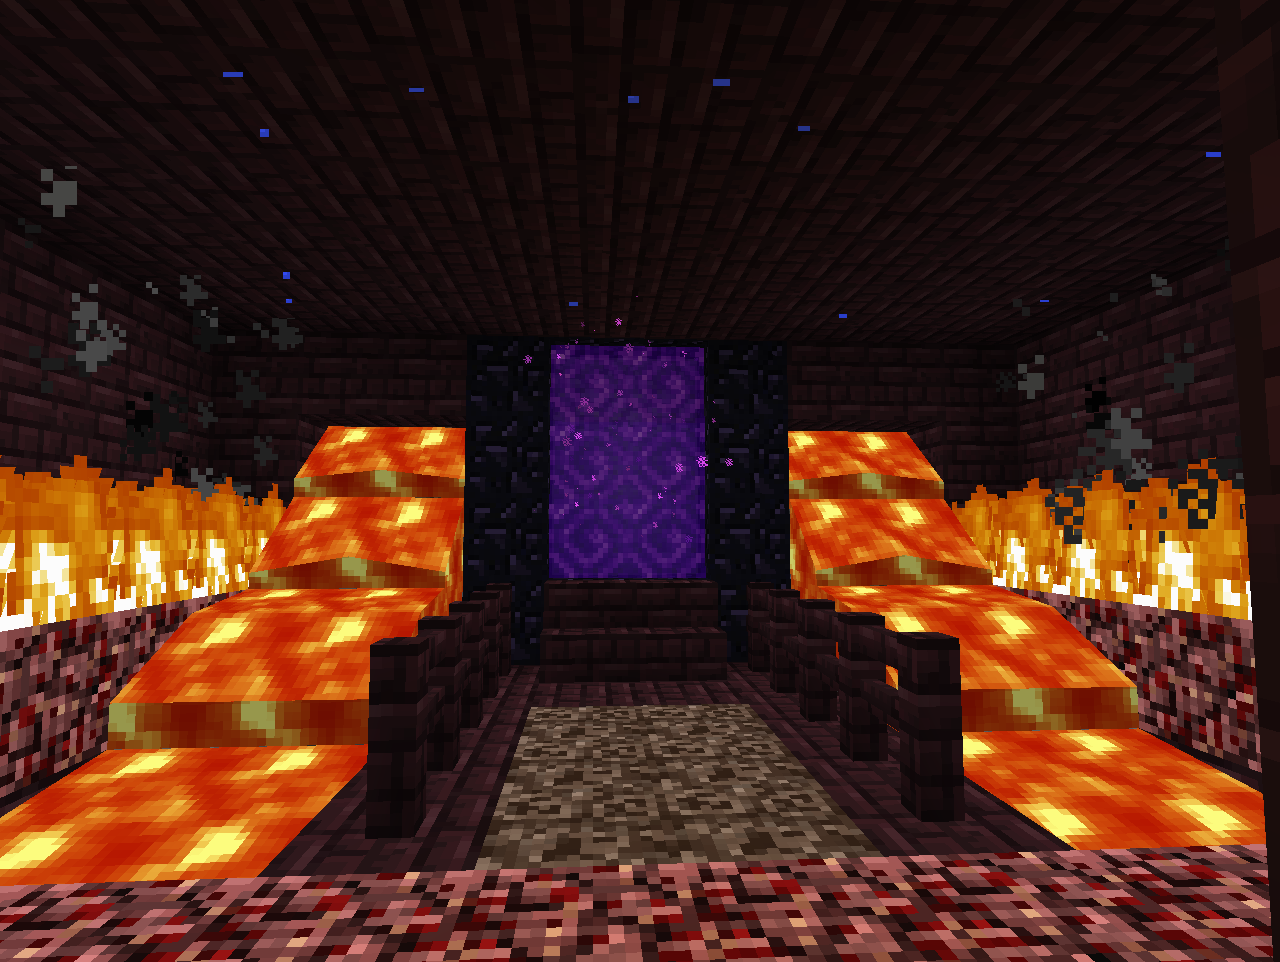 Nether portal room